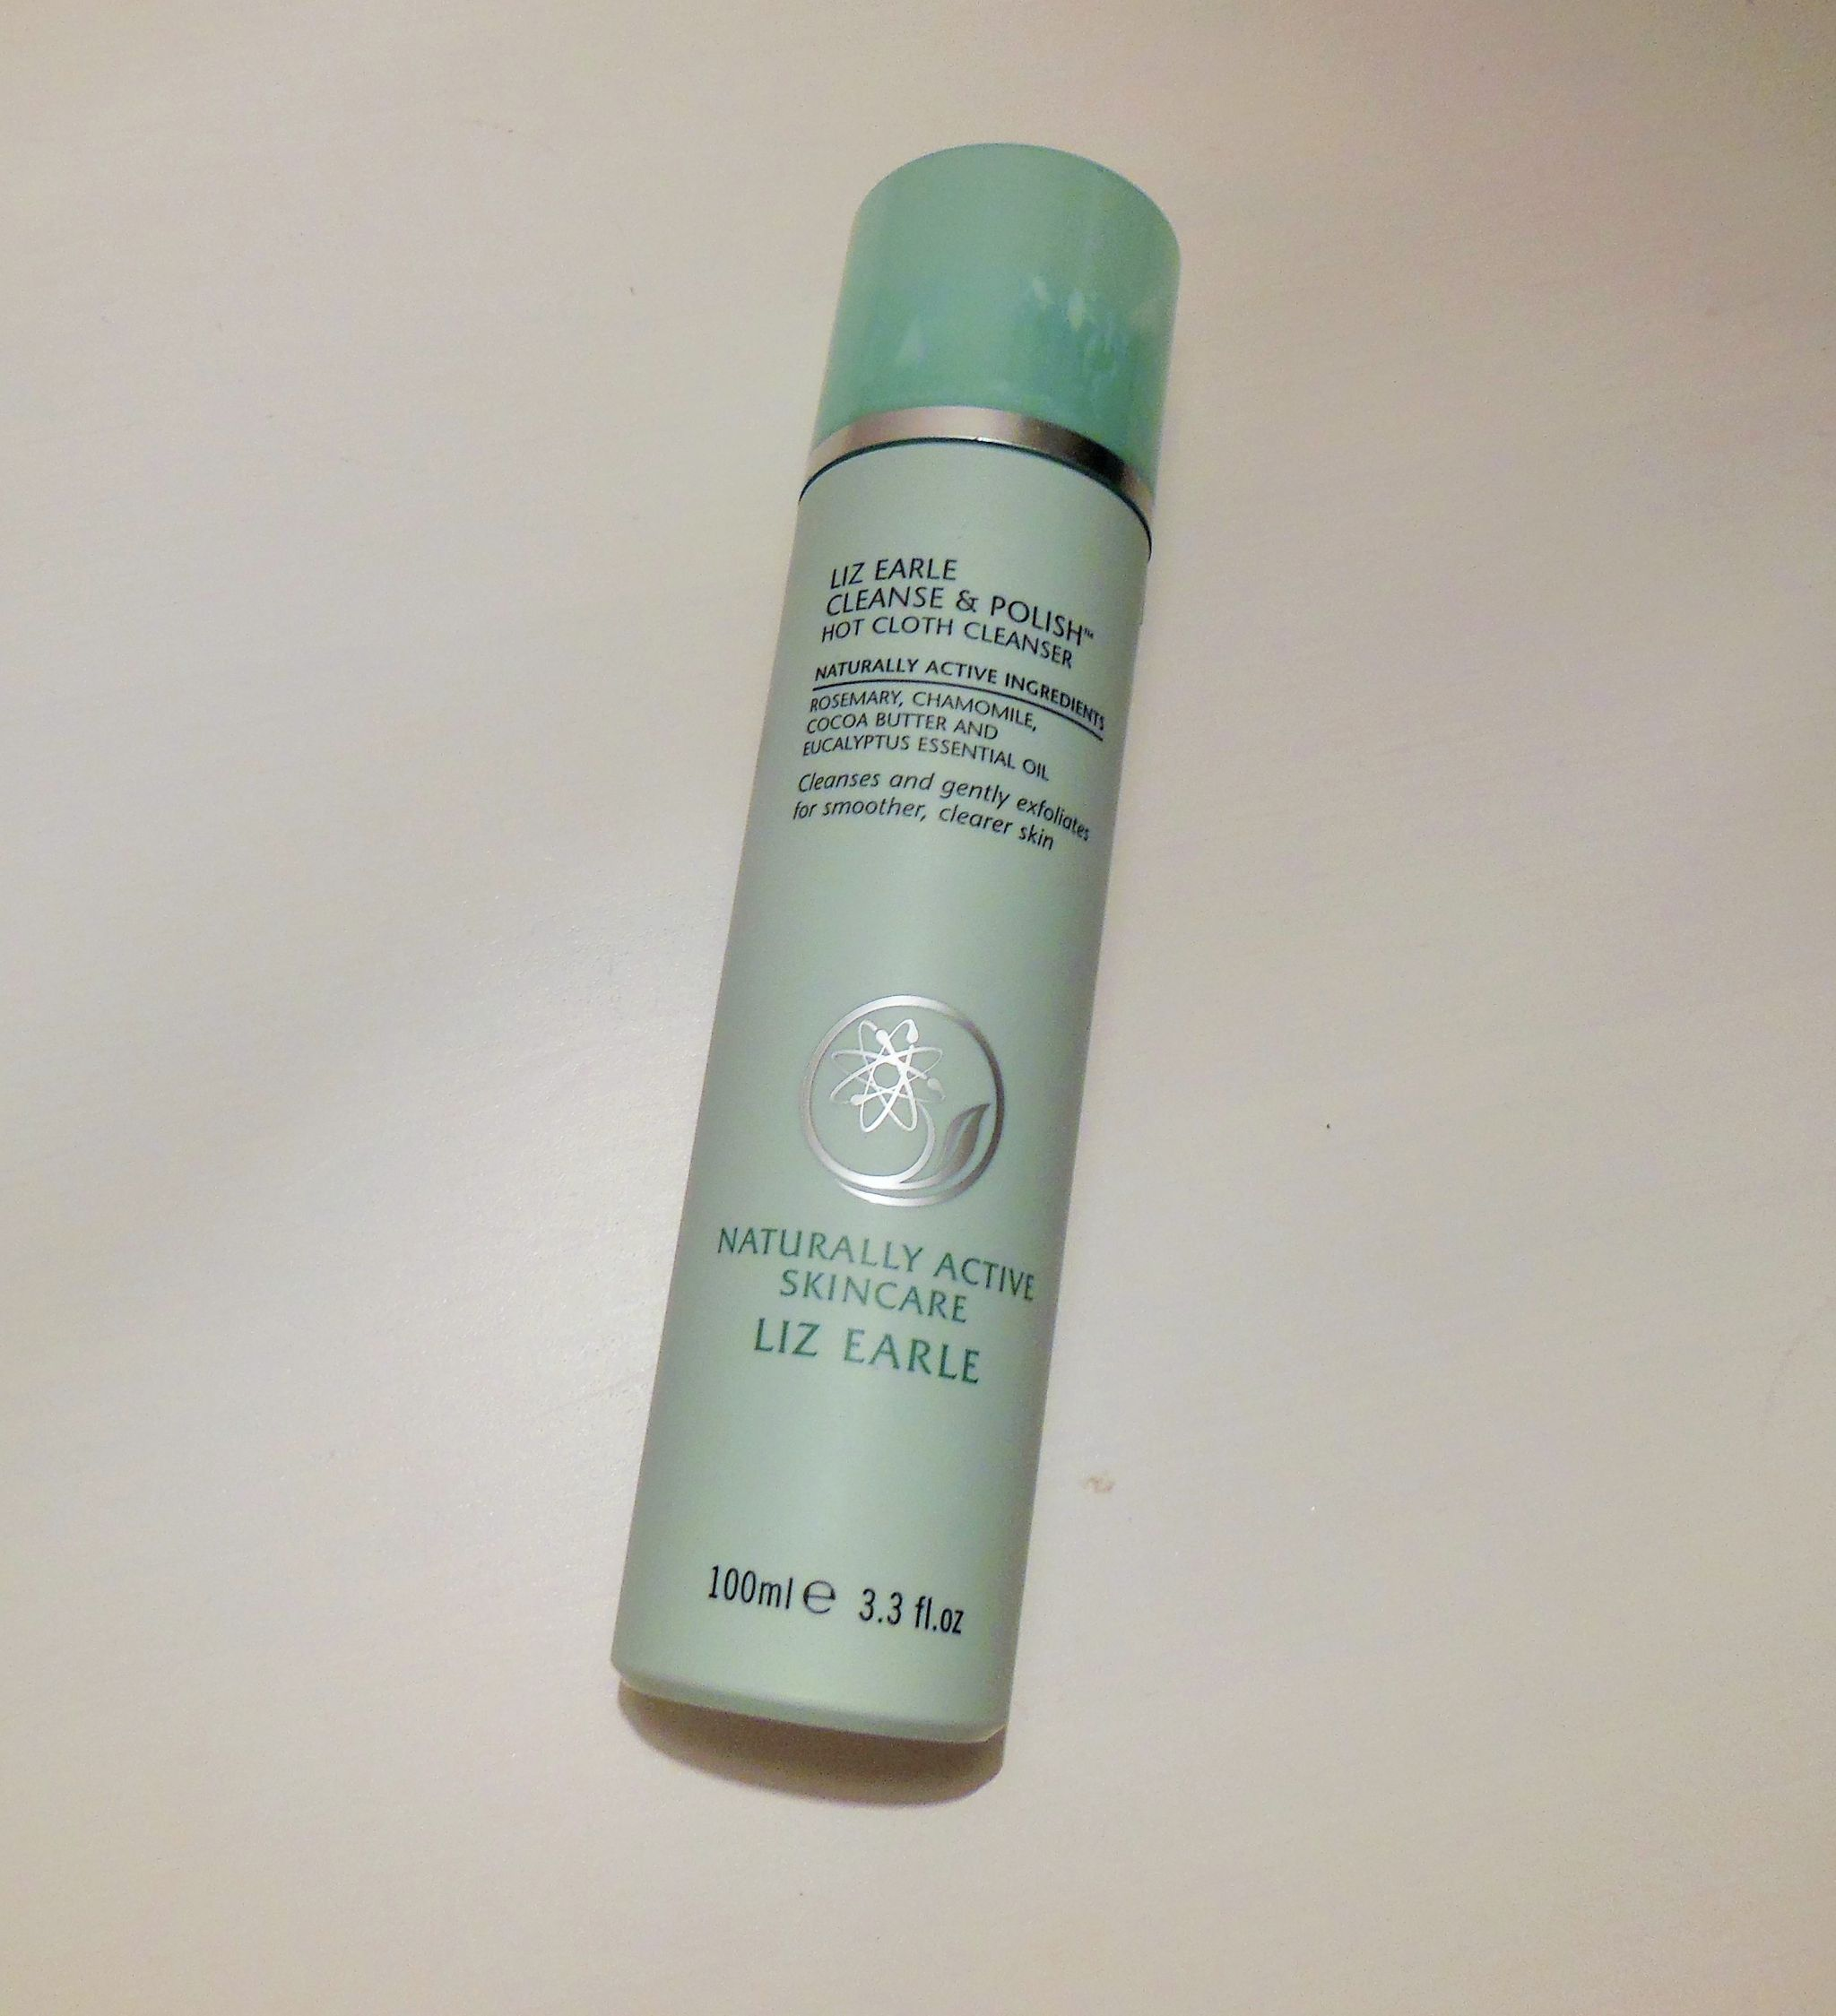 BEAUTY // LIZ EARLE CLEANSE & POLISH